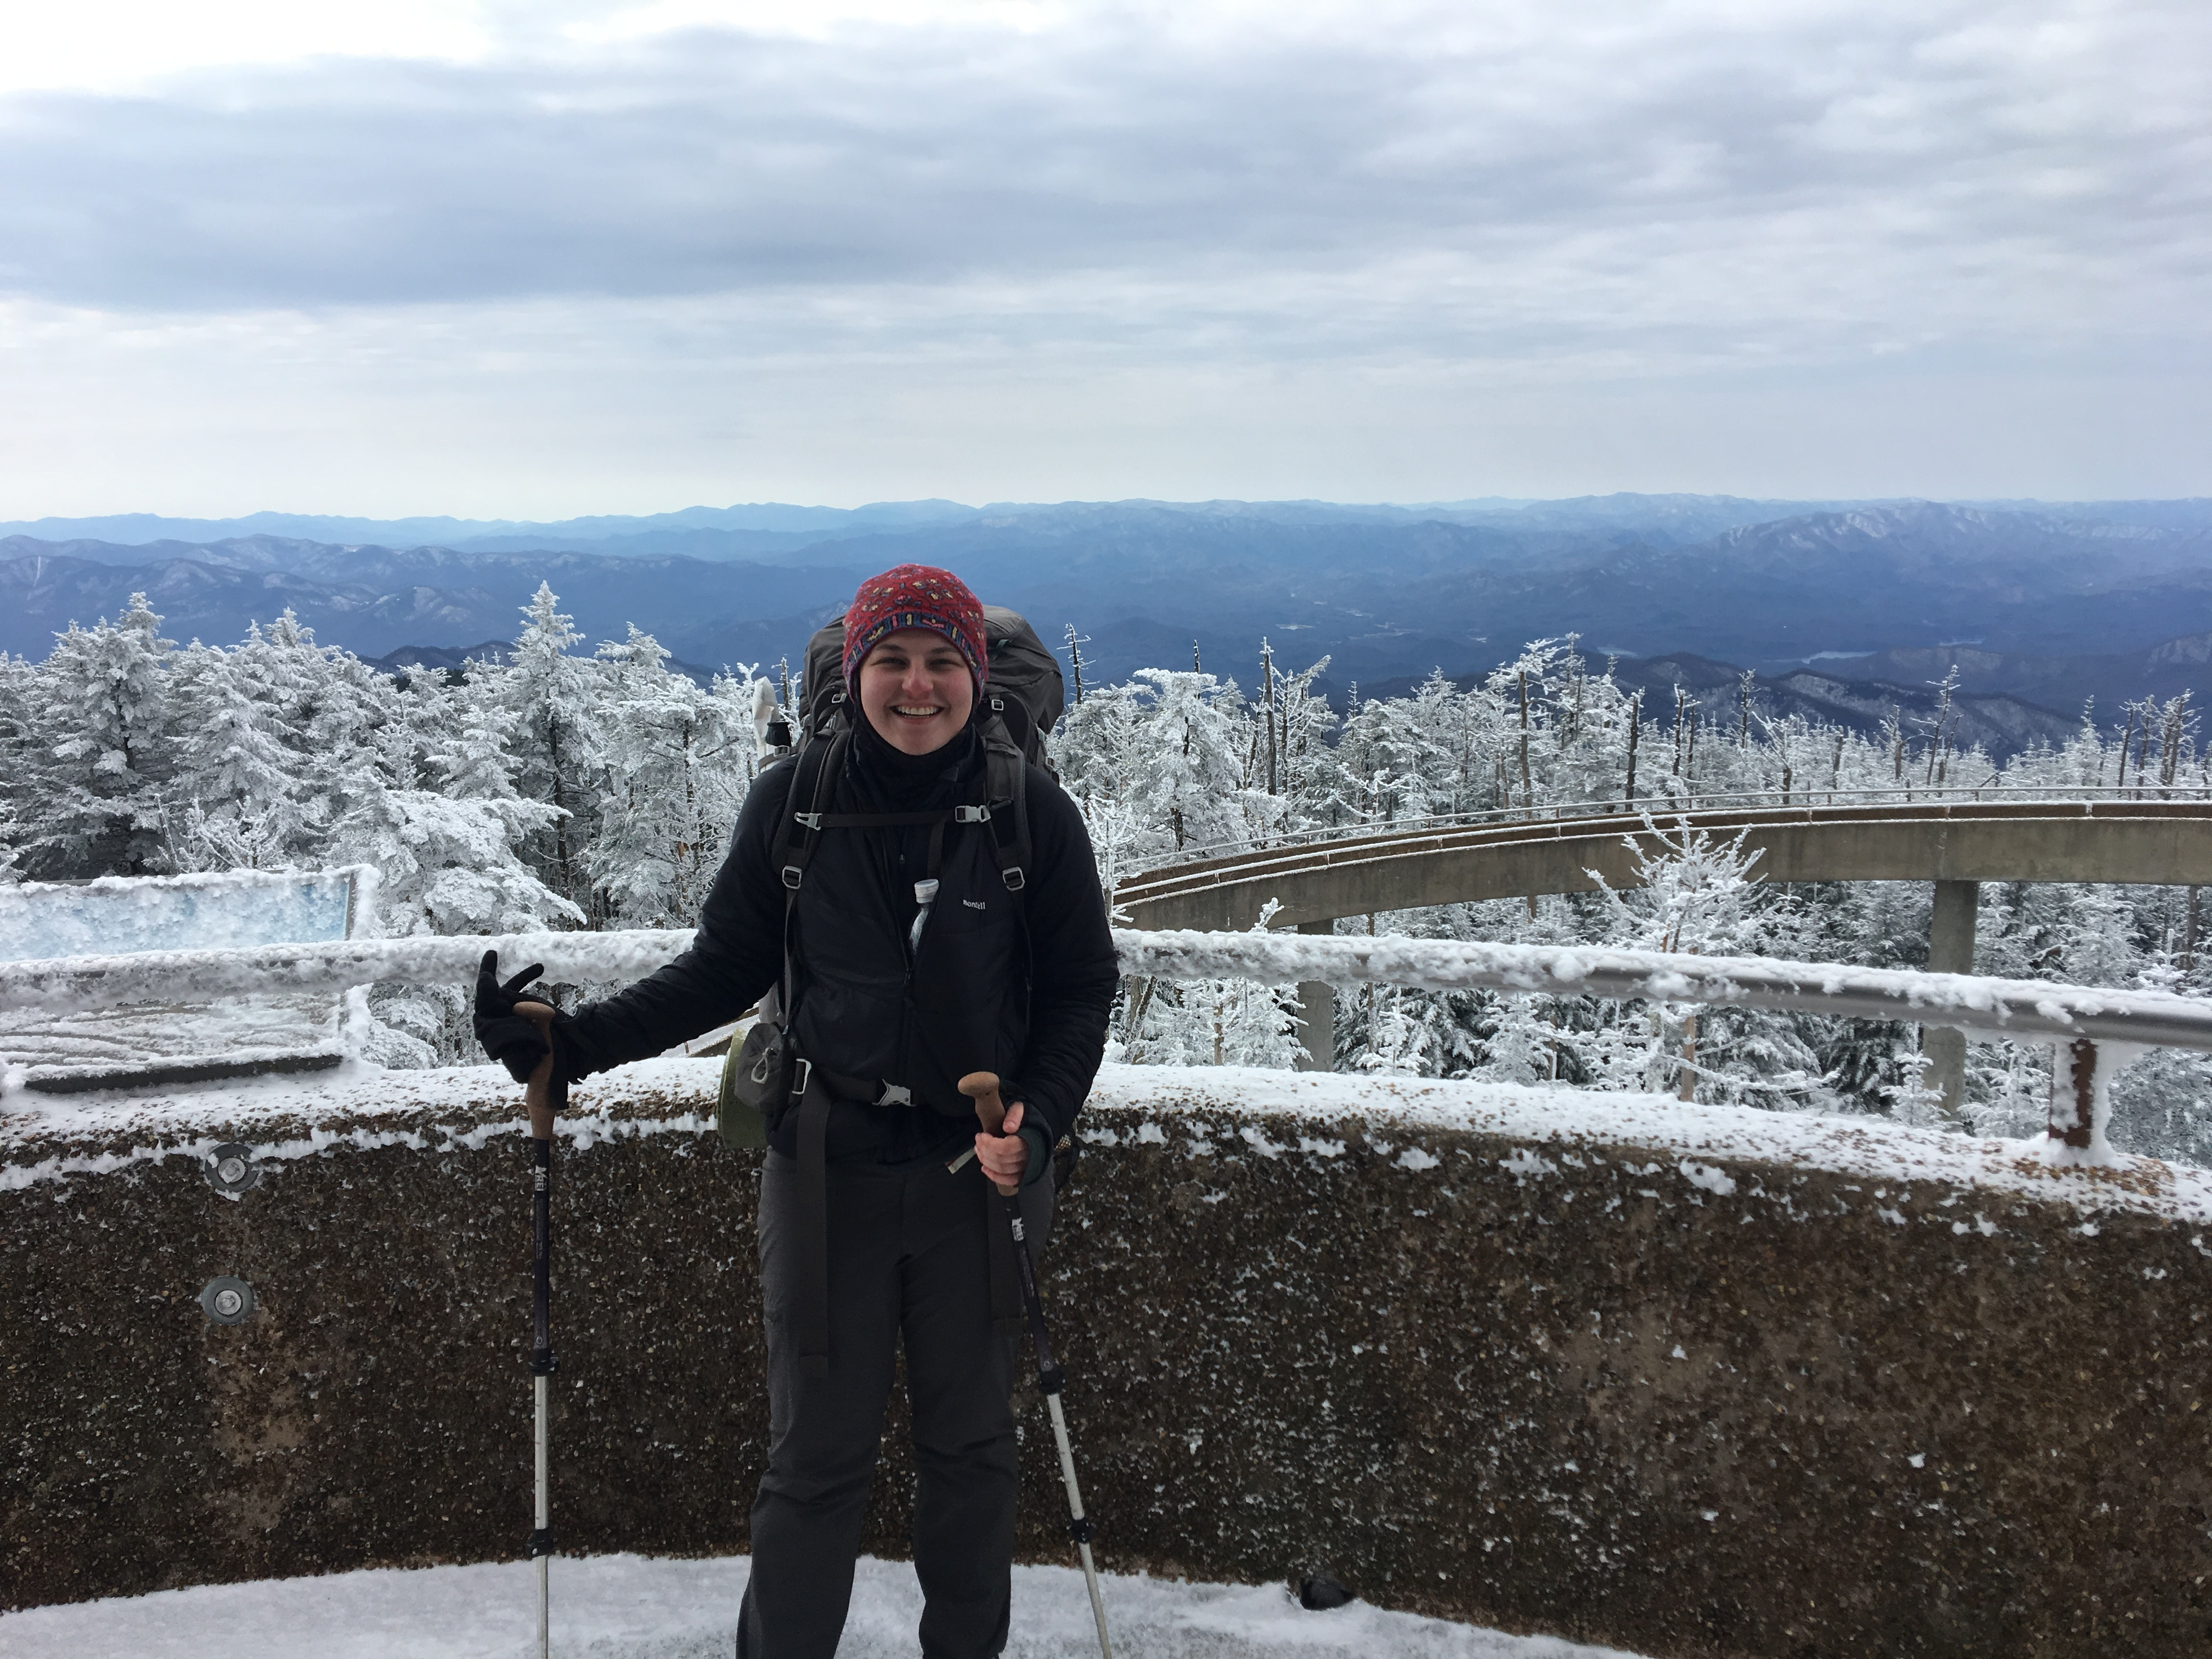 A Lifelong Asthmatic's Tips for Dealing with Asthma During a Thru-Hike - The Trek